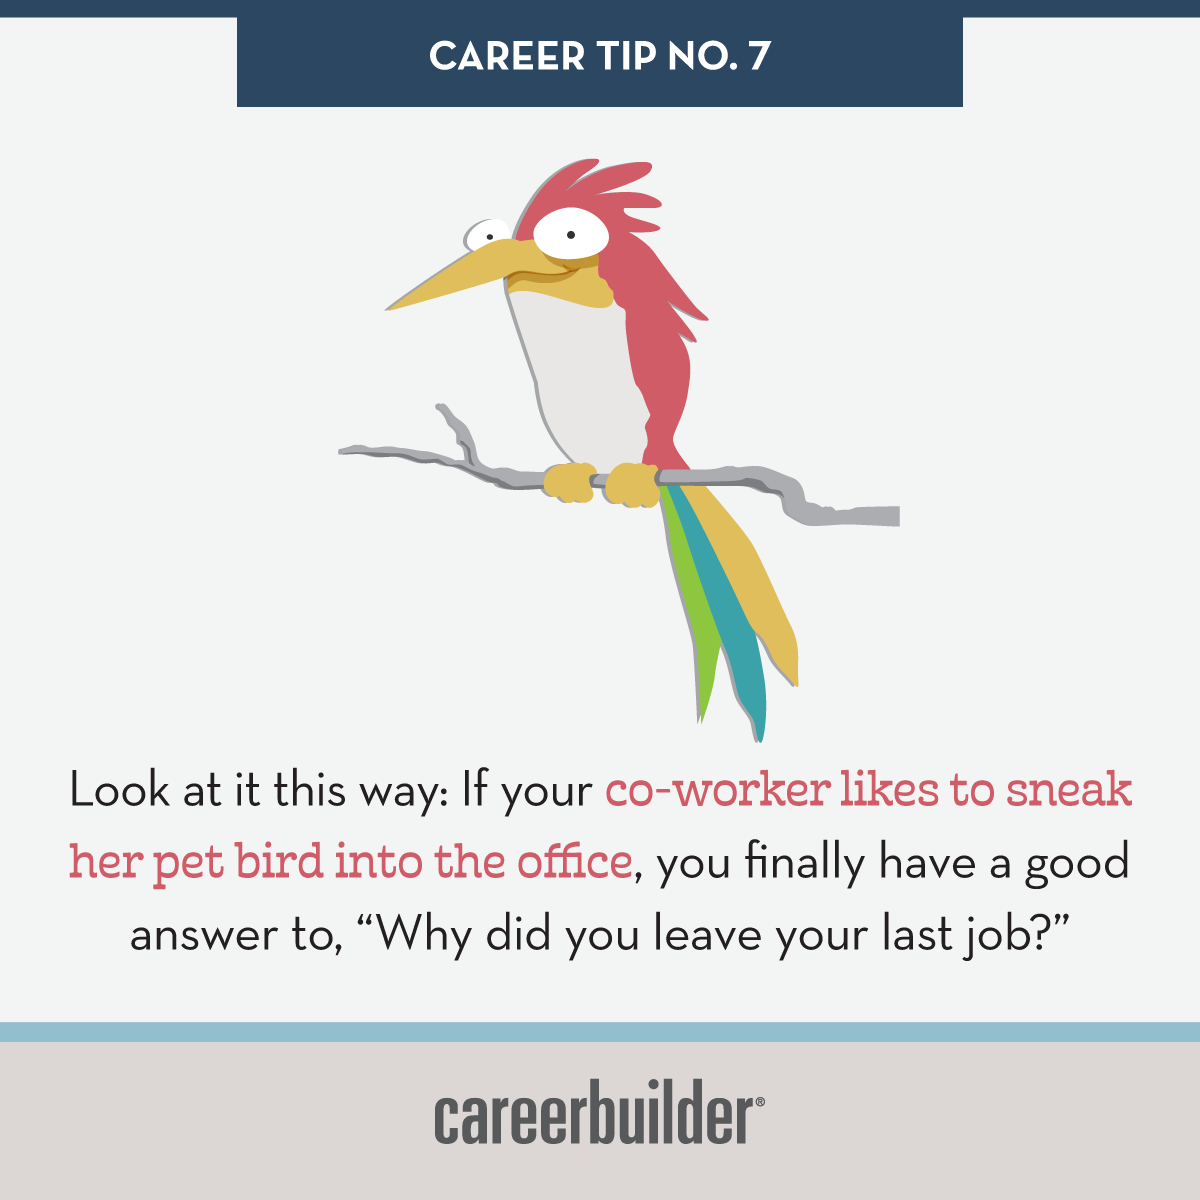 Don T Bring Your Bird To Work Career Development Career Advice